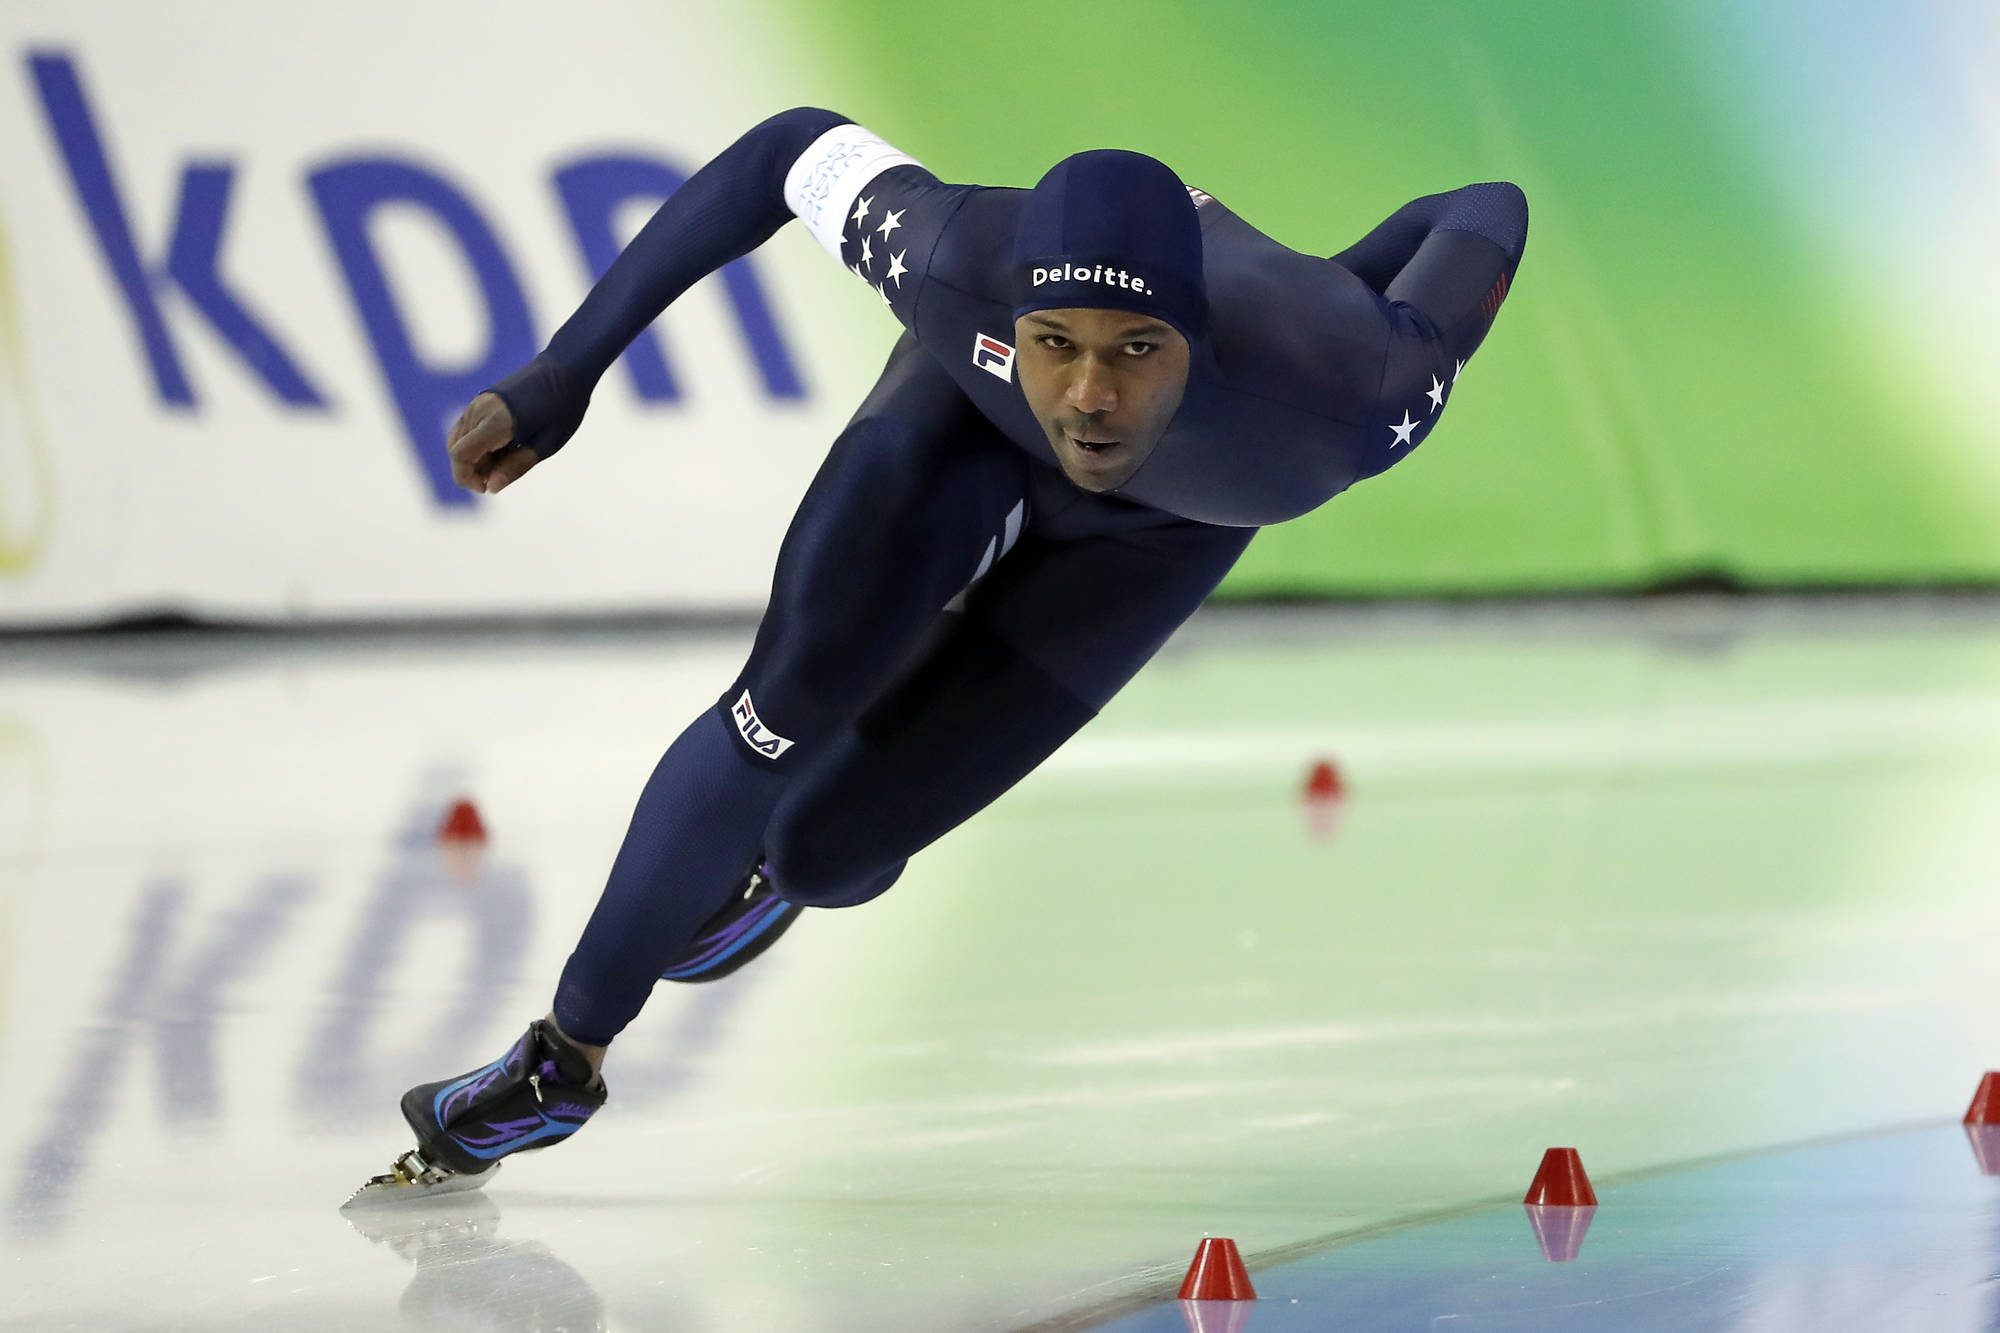 Shani Davis skips opening ceremony after coin toss controversy